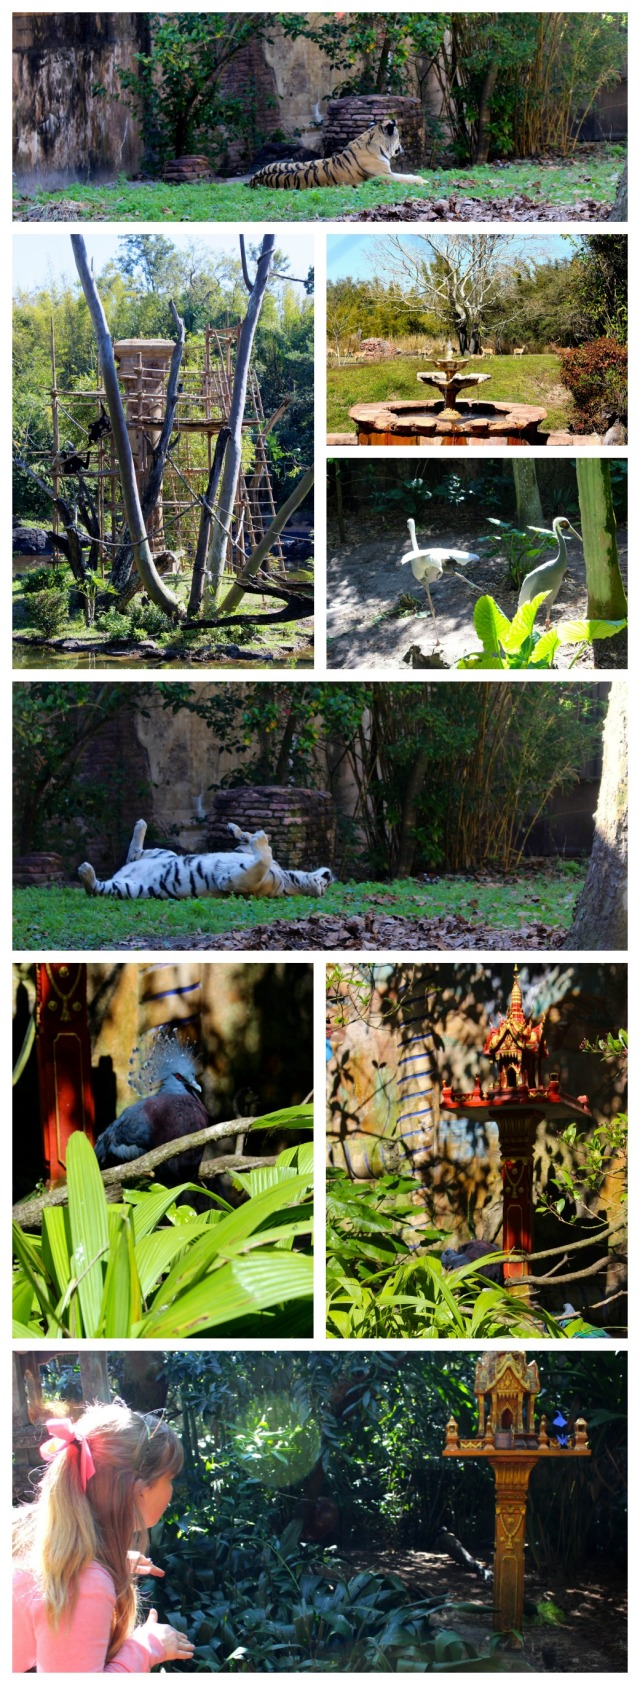 from-asia-to-africa-and-back-again-animal-kingdom-jungle-trek